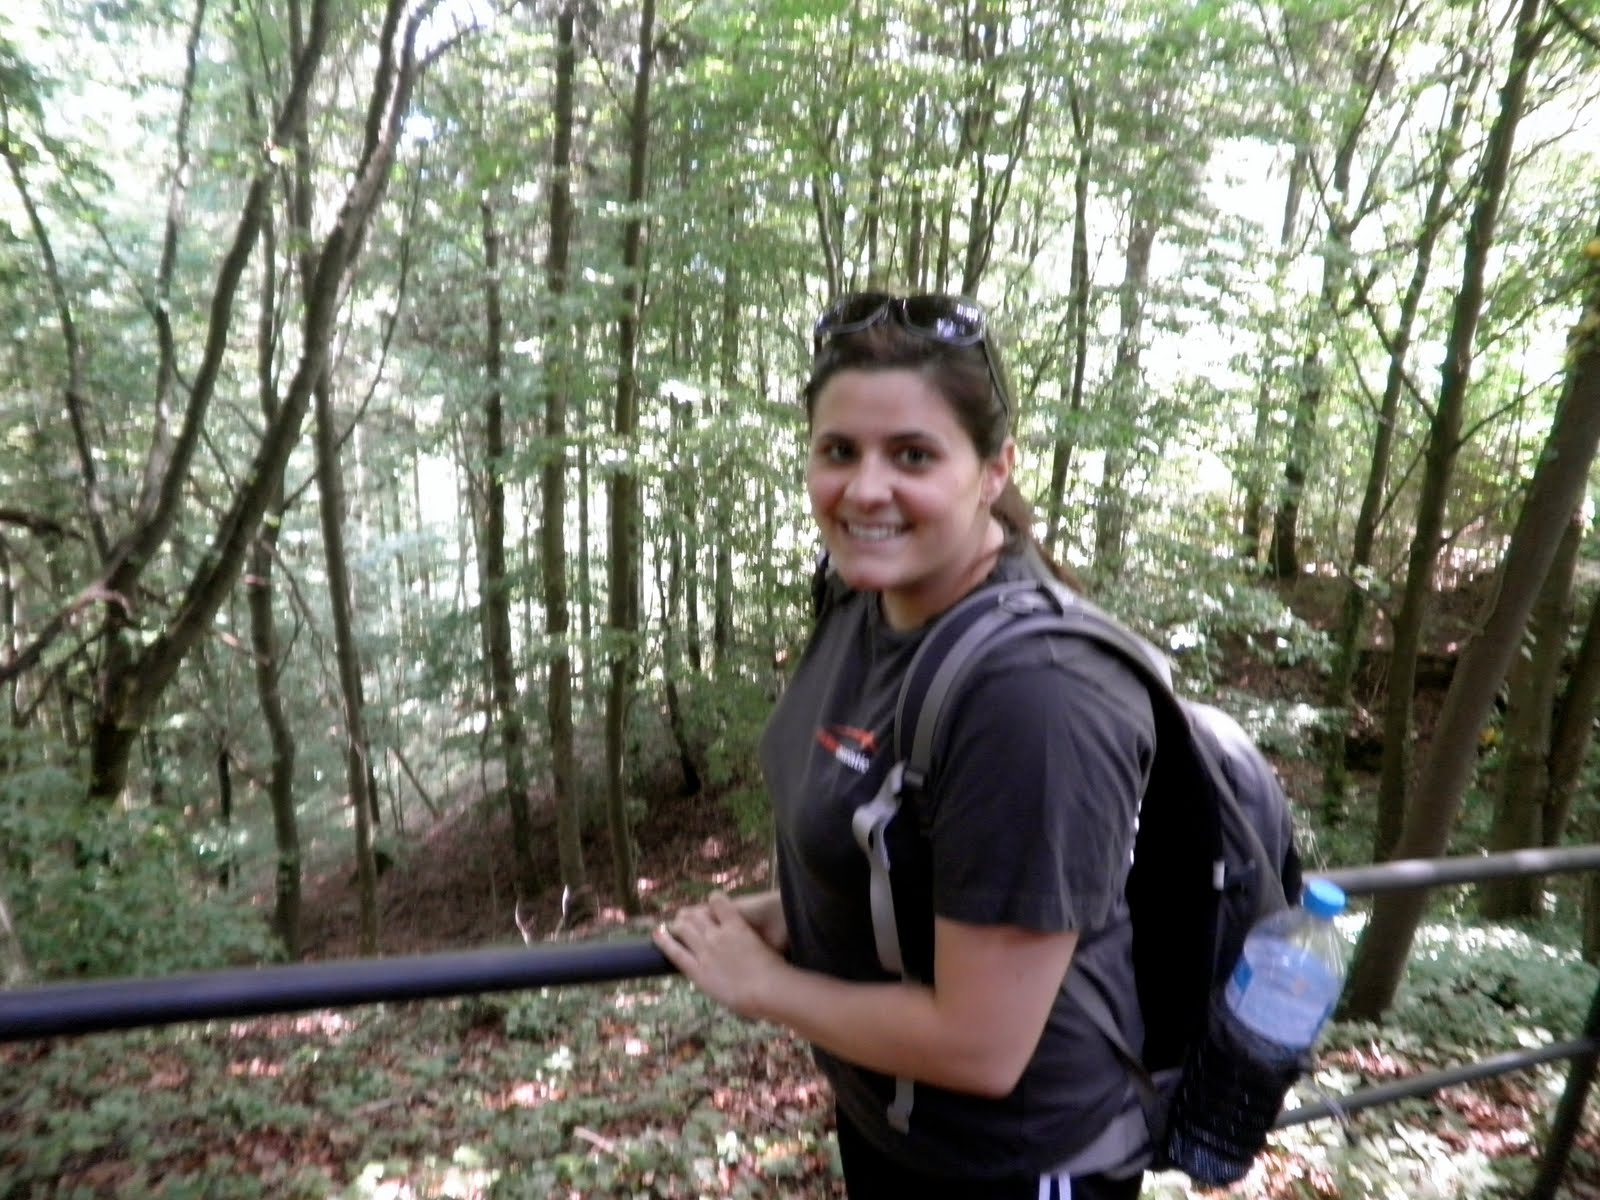 hiking through Baden-Baden,Germany